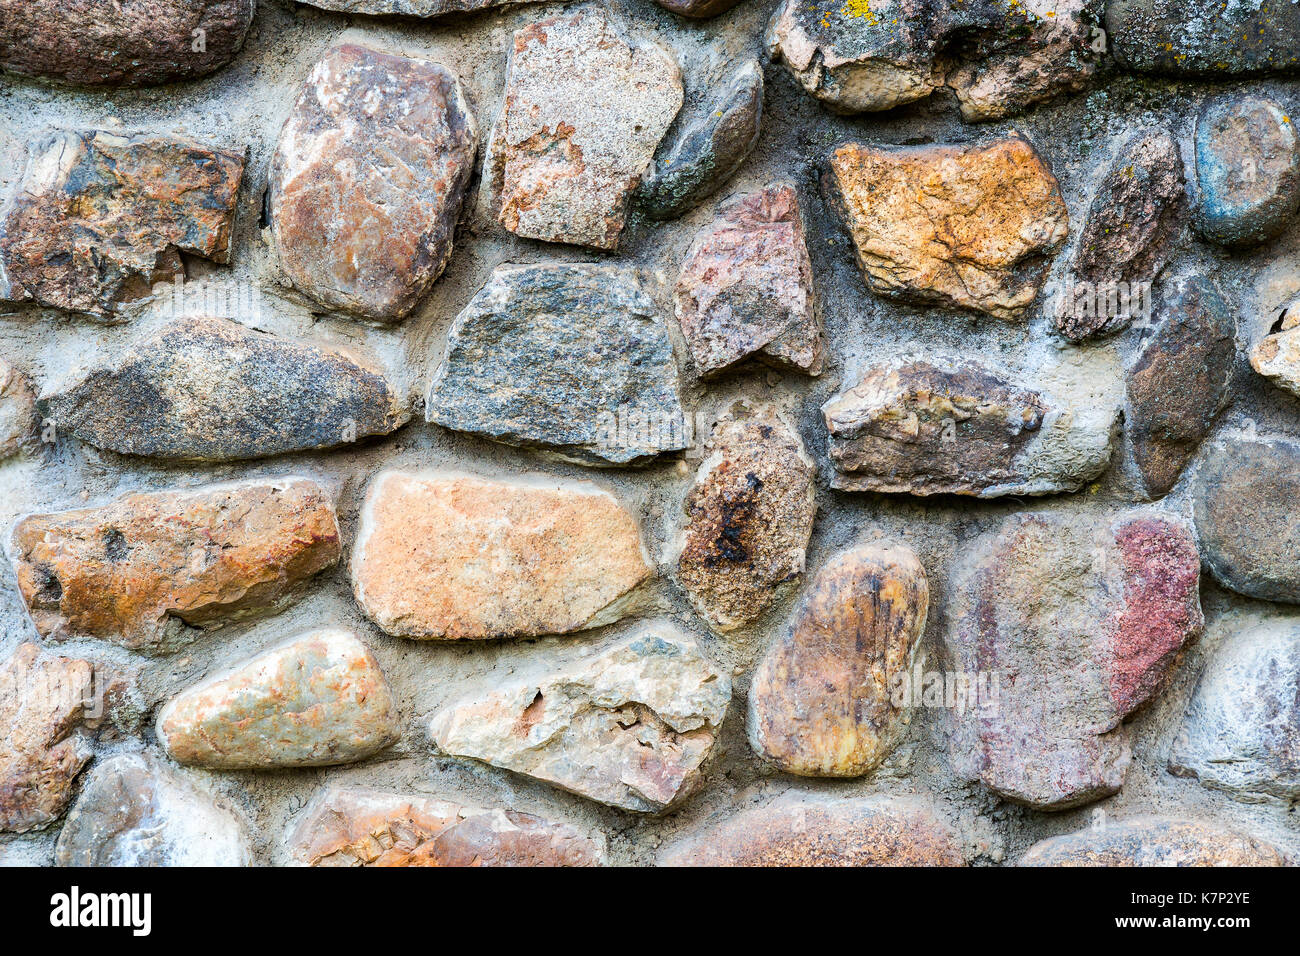 Background texture of an old stone wall - Stock Image